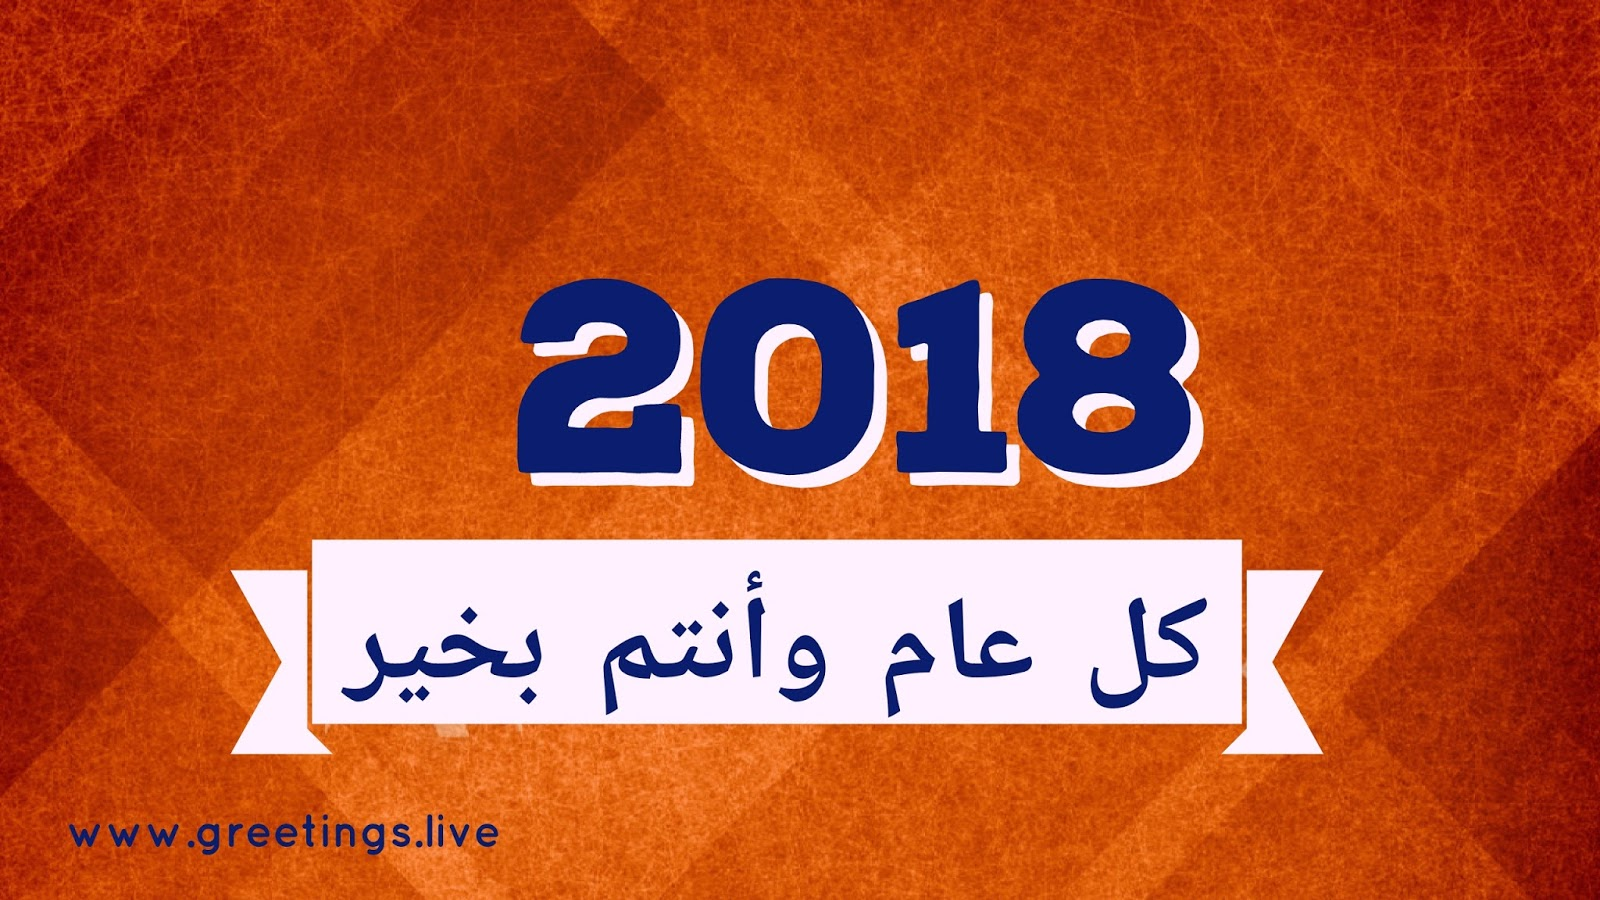 2018 new year wishes greetings arabic wishes on first january new arabic wishes on first january new year 2018 m4hsunfo